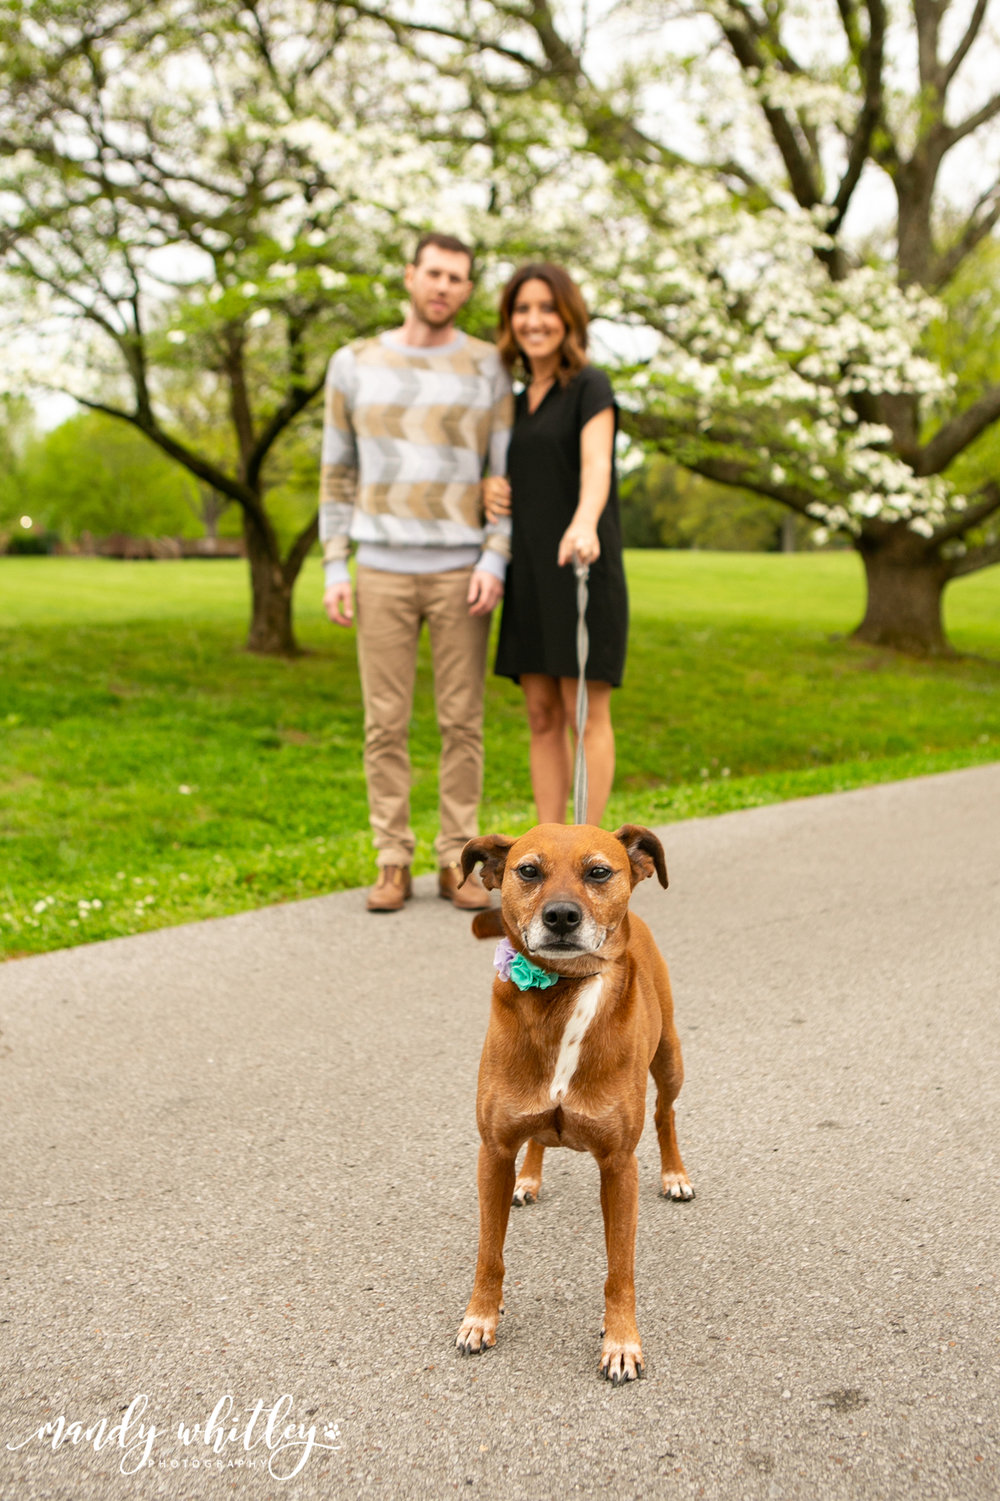 Best Dog Photographer in Tennessee